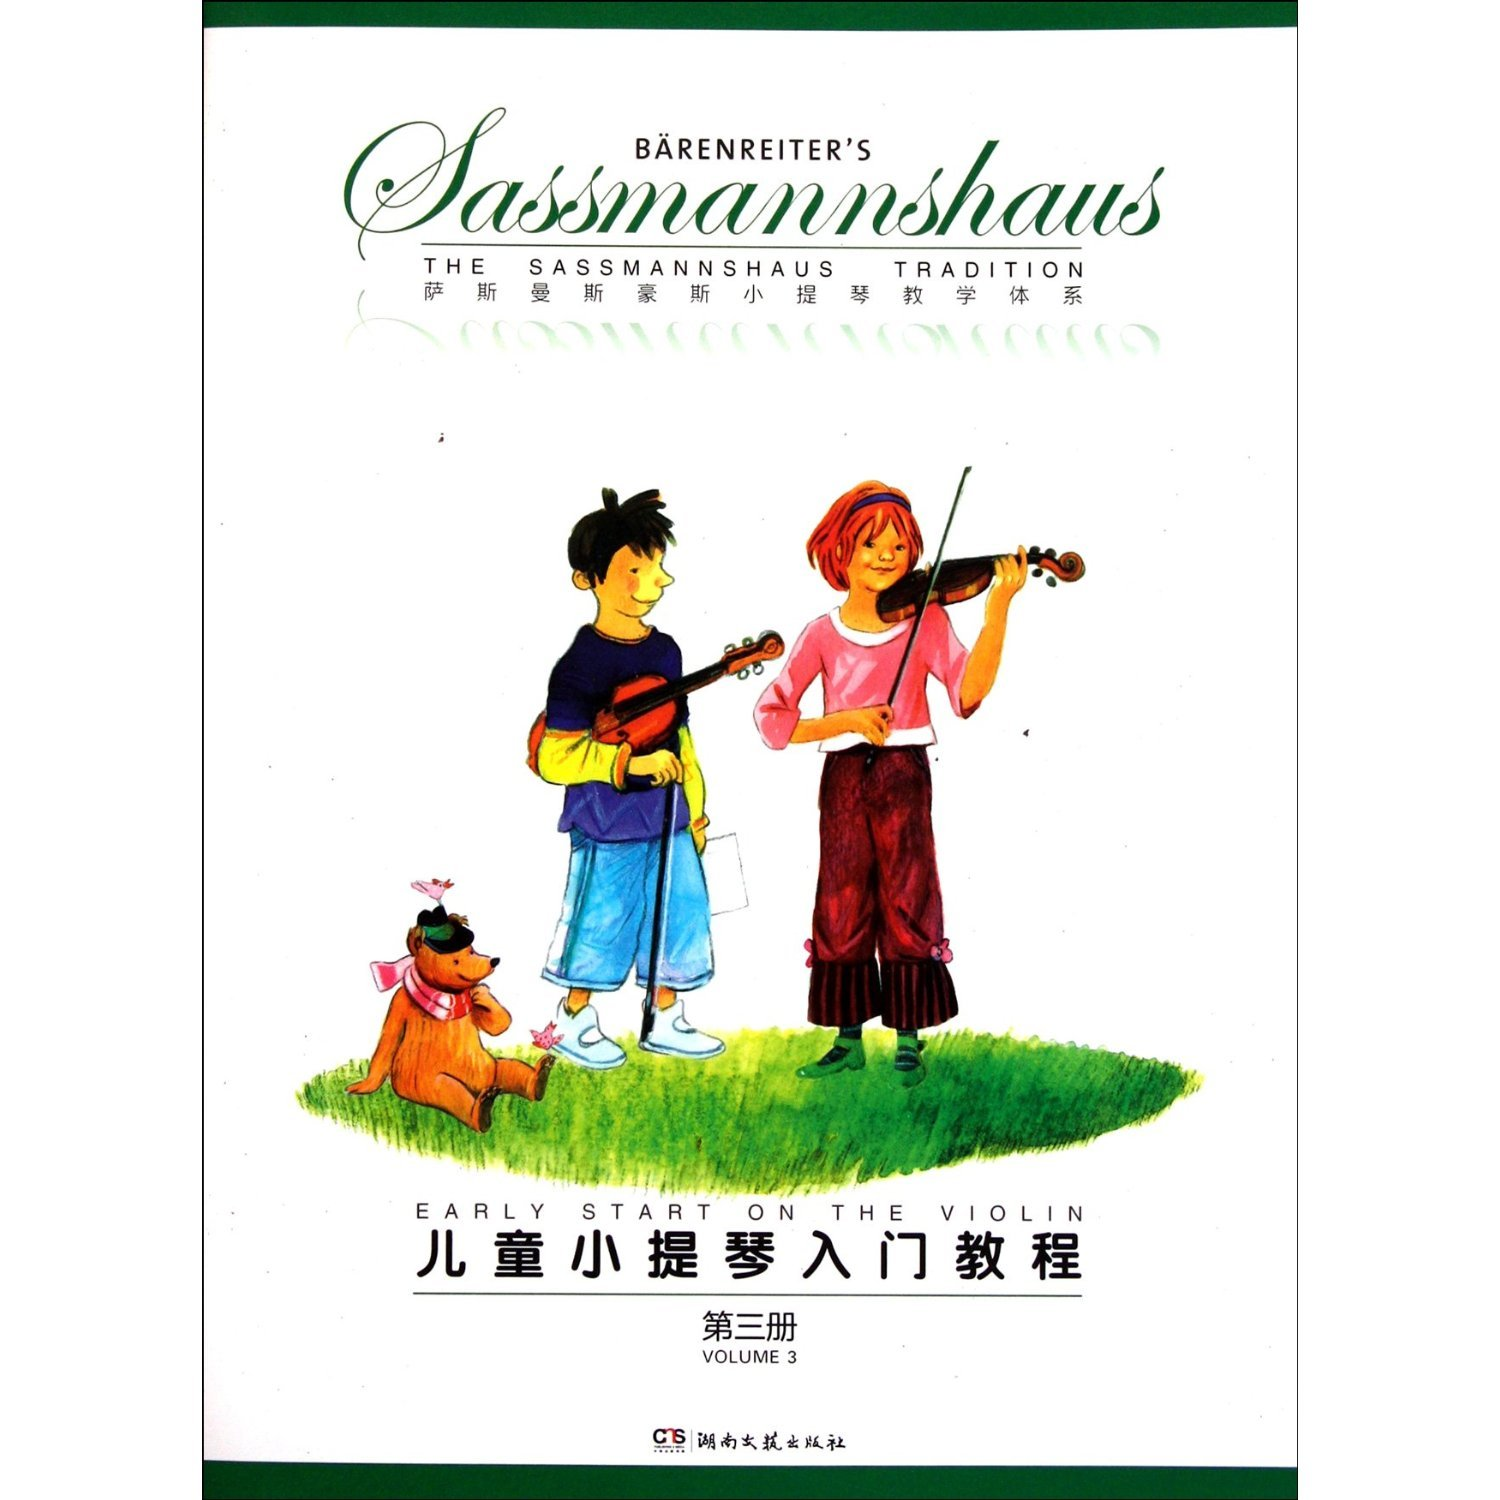 The Sassmannshaus Tradition: Early Start on the Violin, Volume 3 (Chinese Edition) pdf